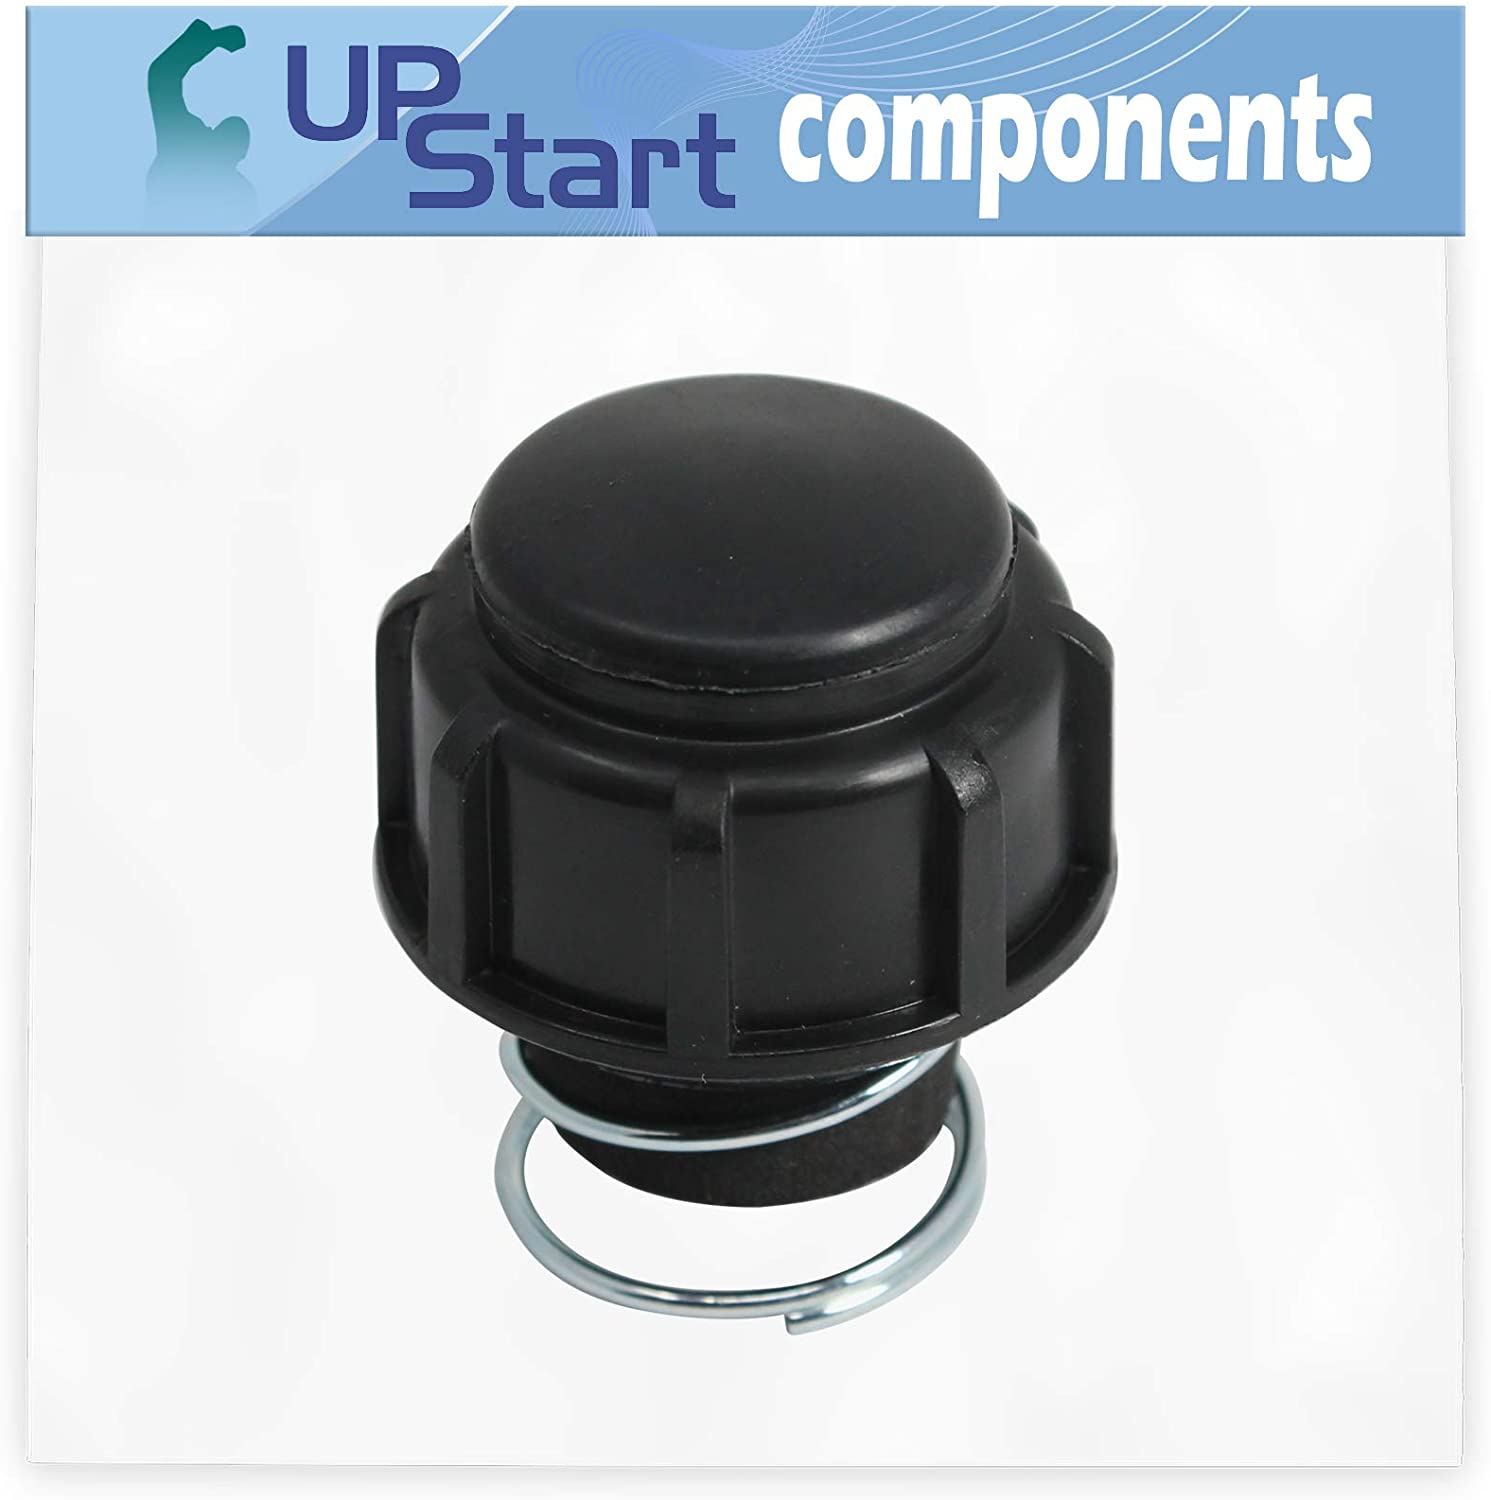 UpStart Components 791-181468B Bump Head Knob Assembly Replacement for Ryobi 975R (611000001) Trimmer - Compatible with 181468 Bump Knob and Spring Assembly